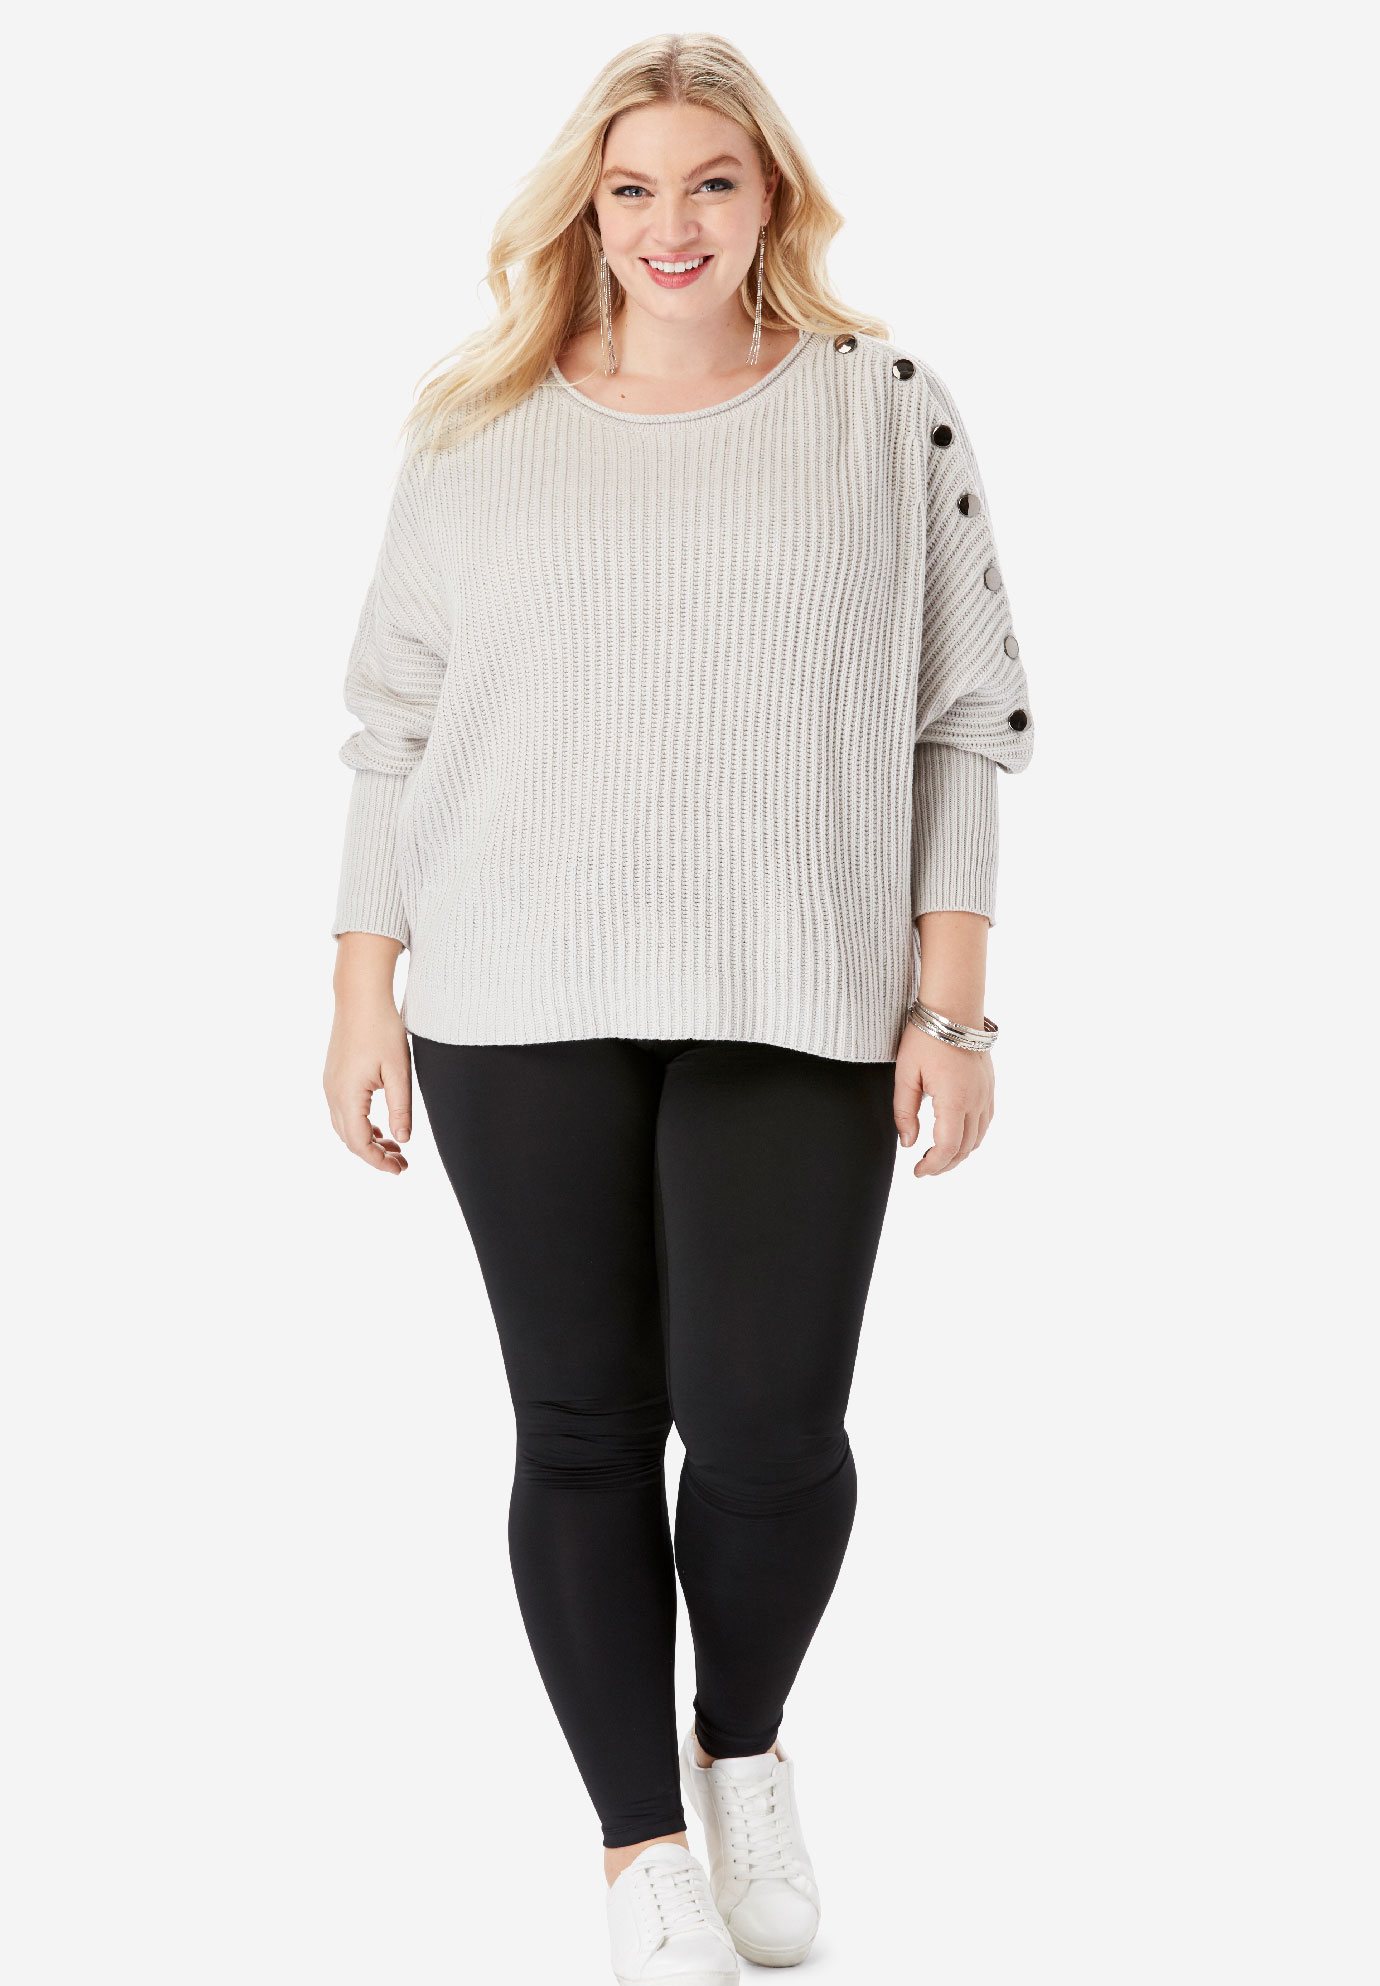 Button-Sleeve Sweater in Shaker Stitch,